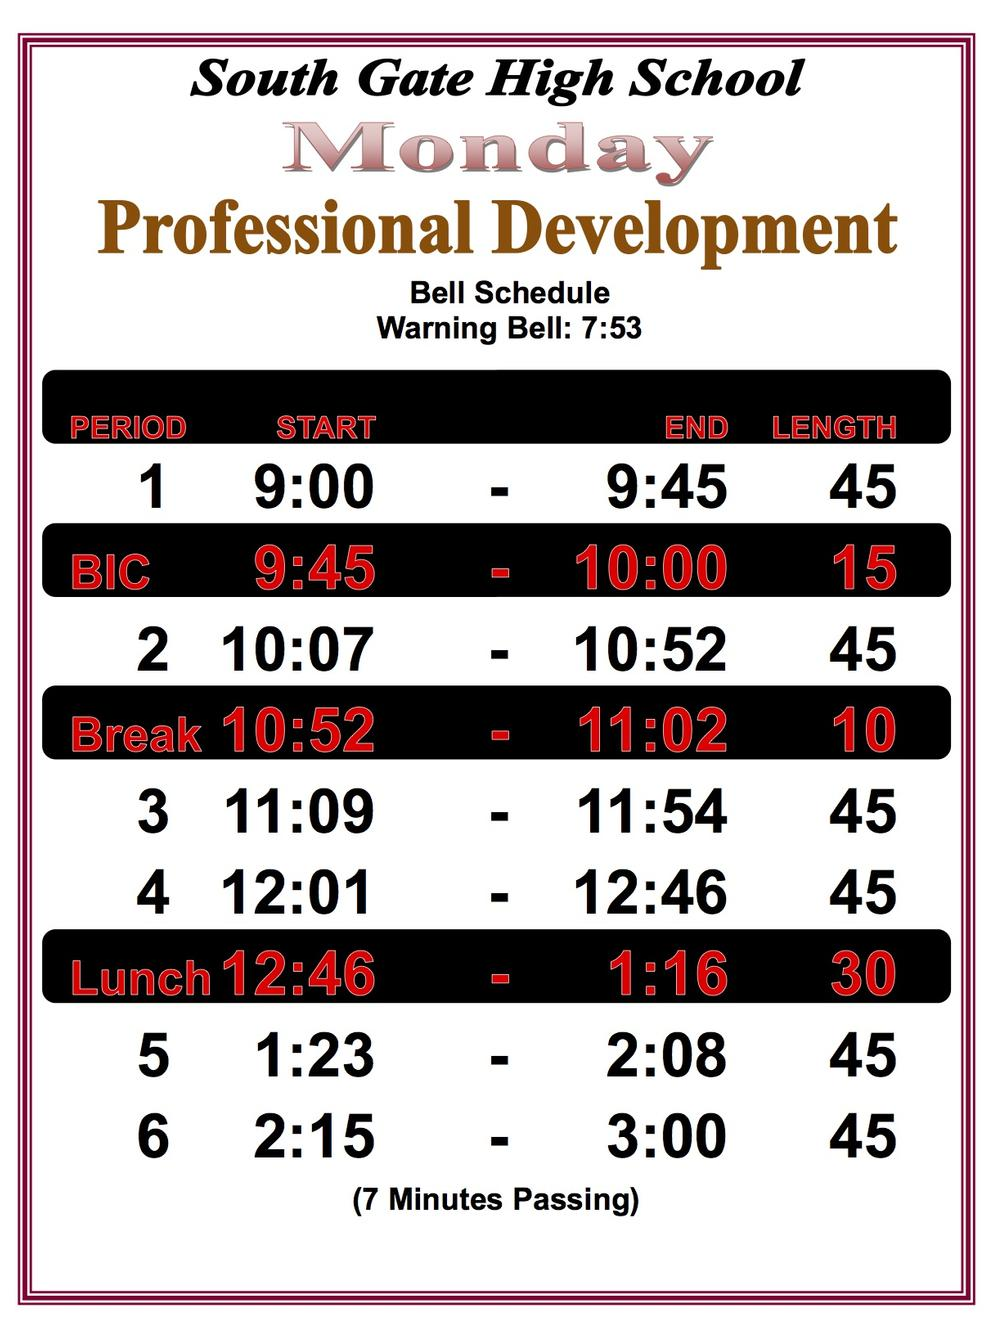 PD Monday Bell Schedule